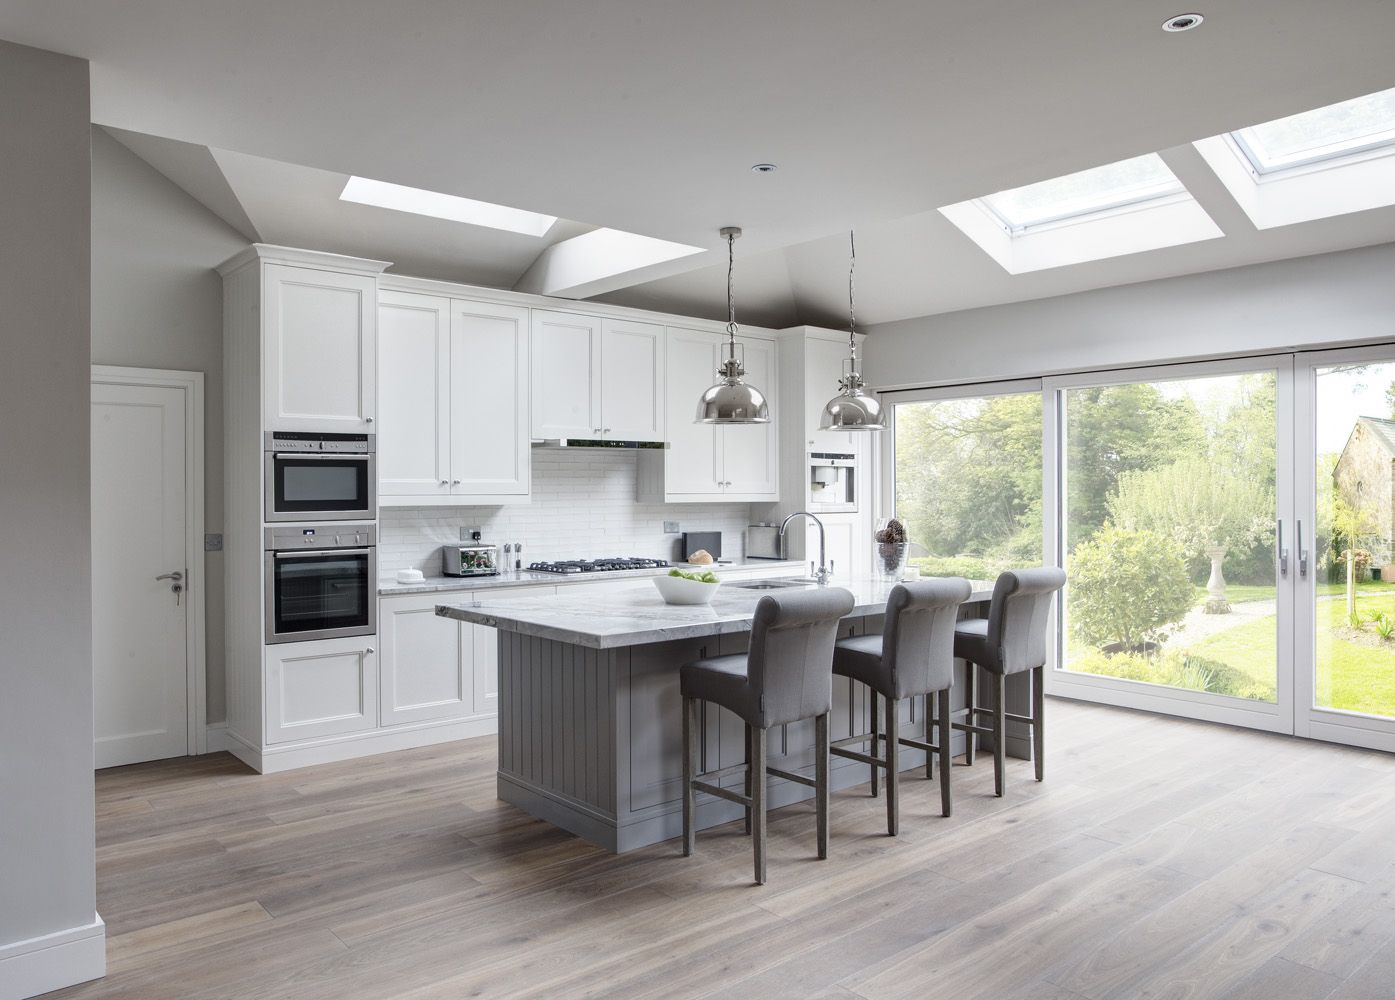 Contemporary Kitchens Contemporary Kitchens Dublin Contemporary Kitchens Ireland Newcastle